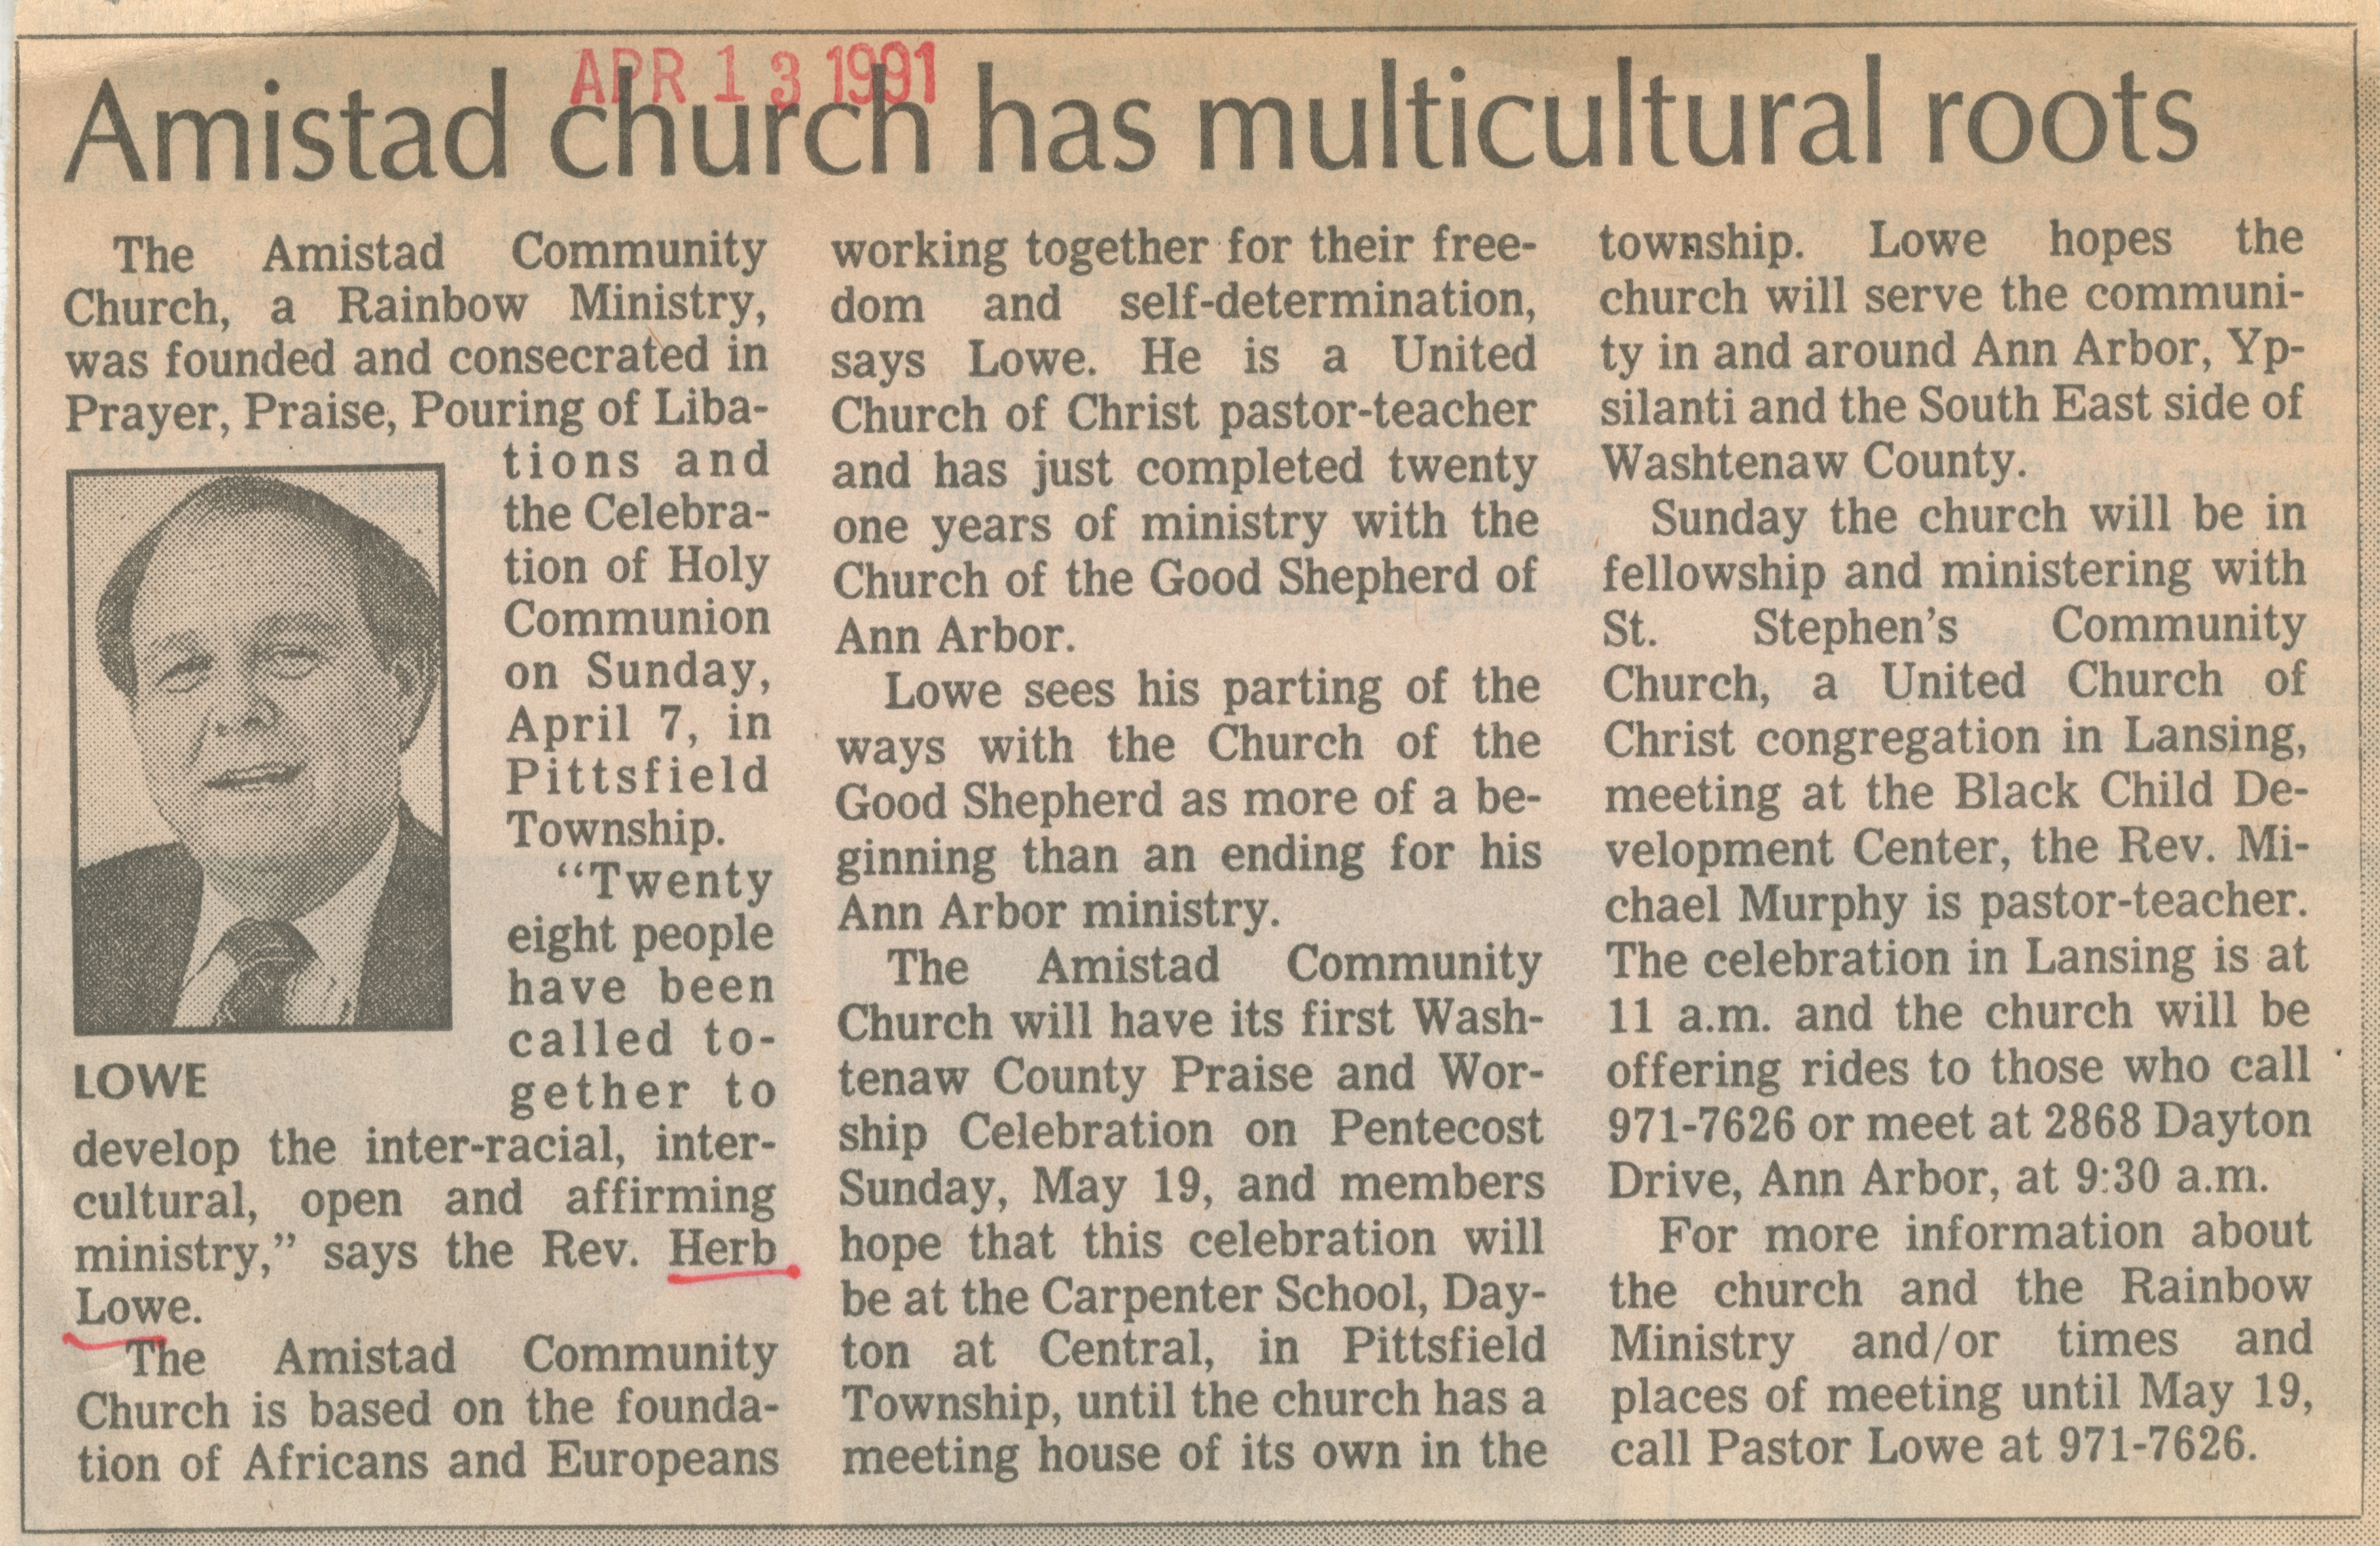 Amistad church has multicultural roots image